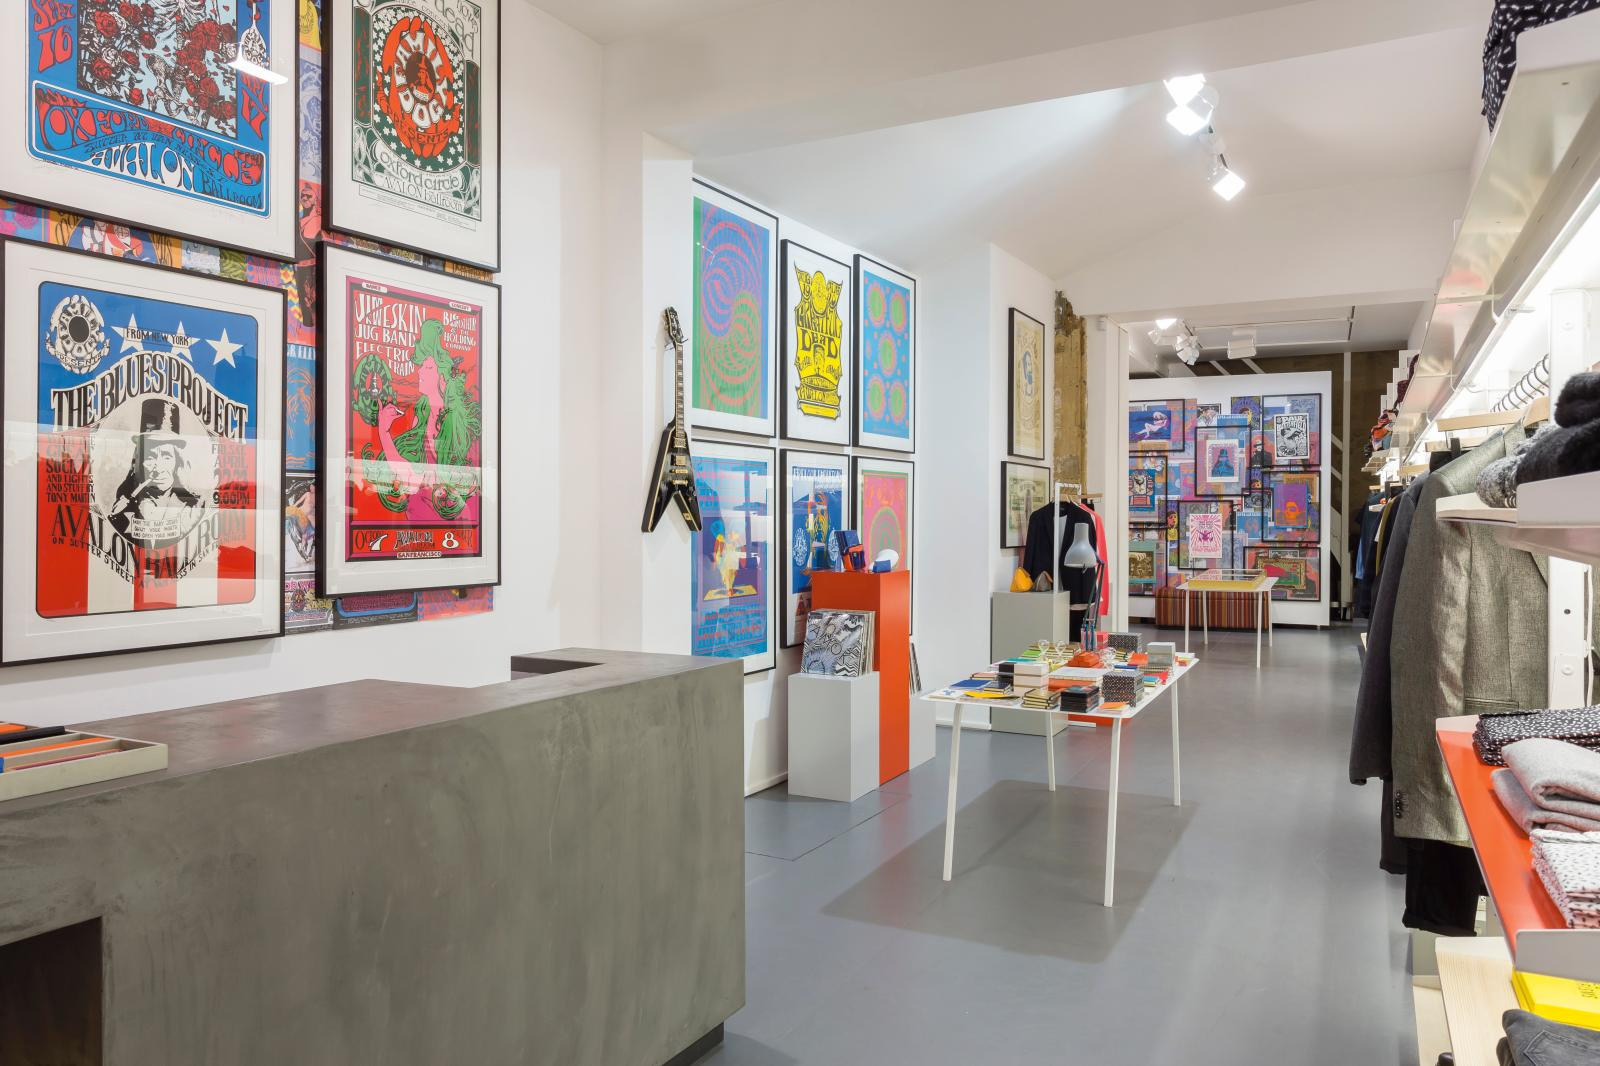 In a Paris shop decorated by 1970s posters bought by Smith.© Paul Smith